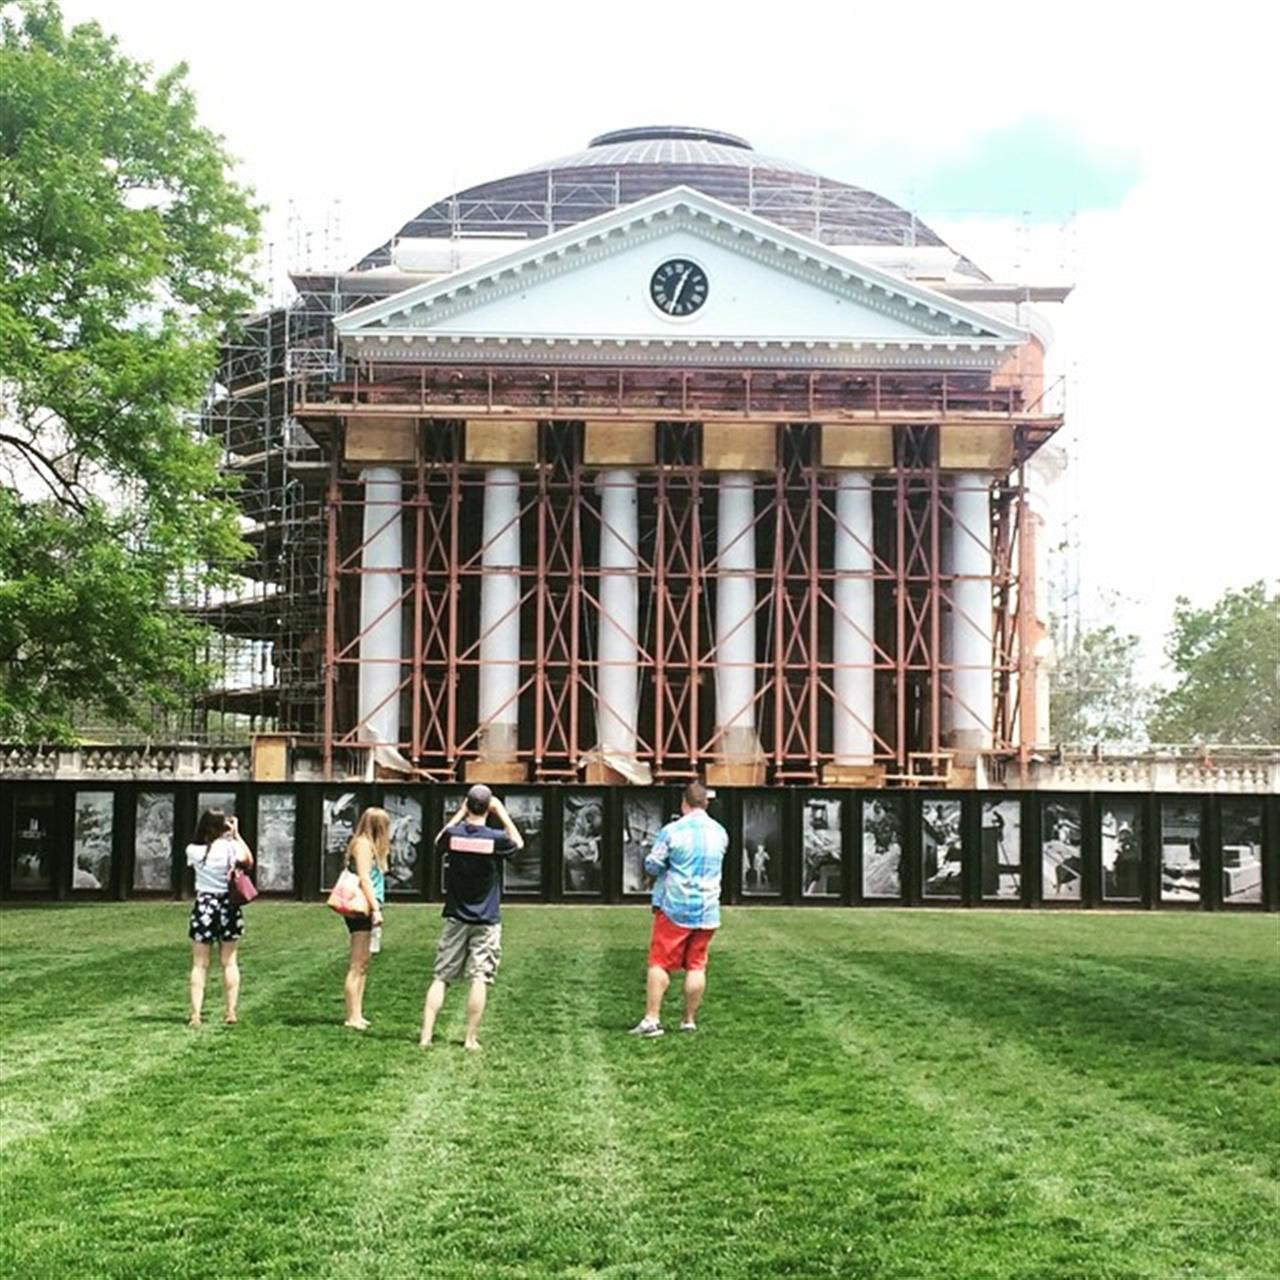 Still beautiful even though it's covered in scaffolding. #cville #architecture #uva